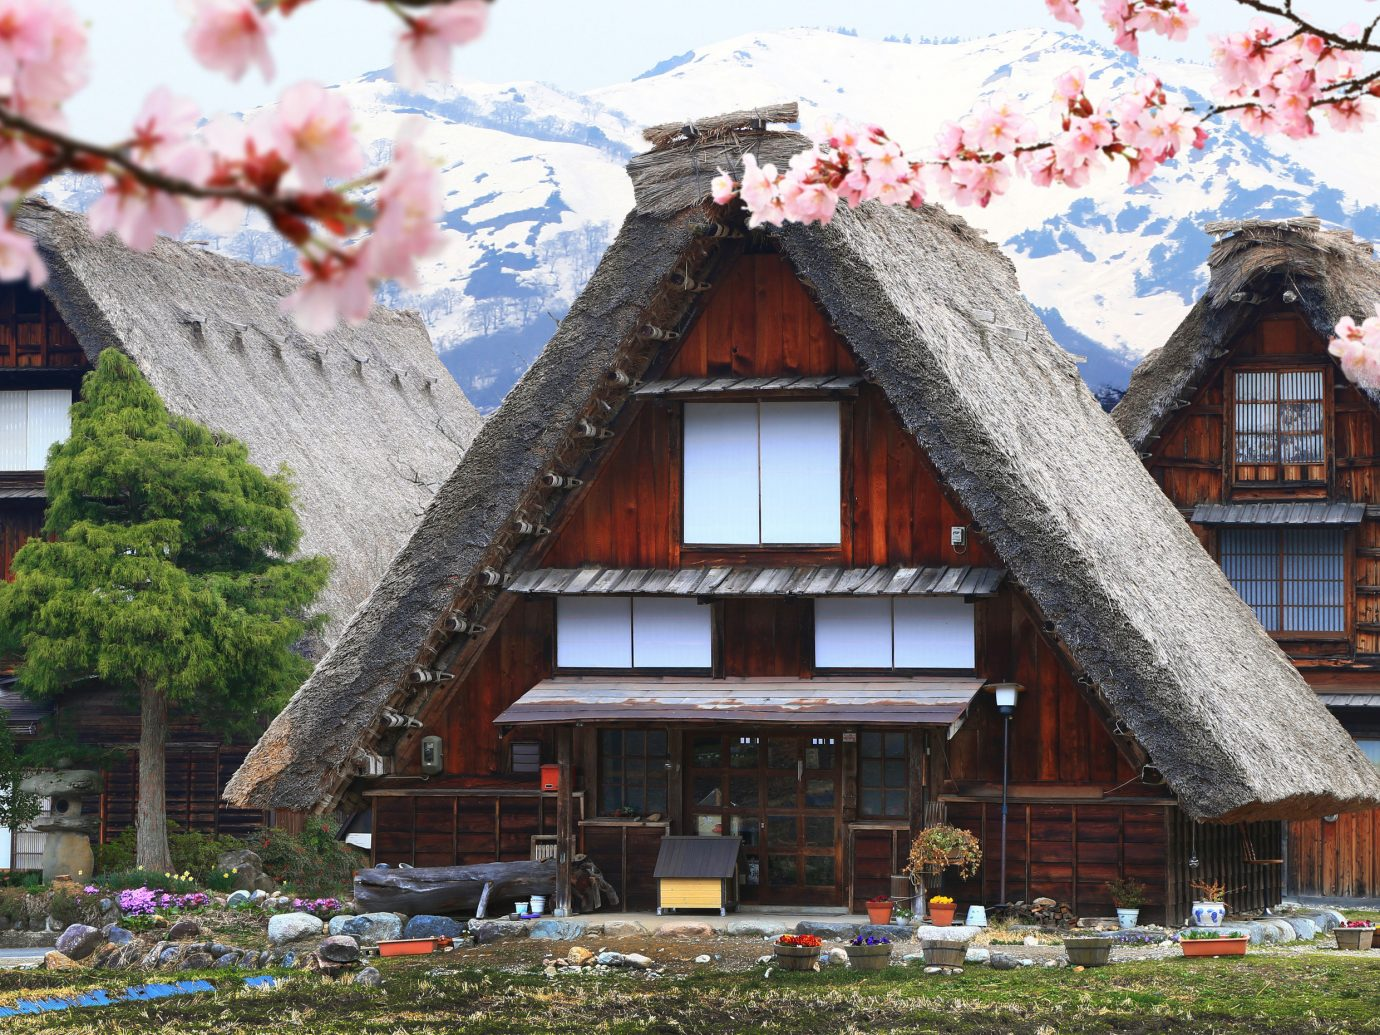 Trip Ideas flower plant house home tree building spring cherry blossom facade cottage roof